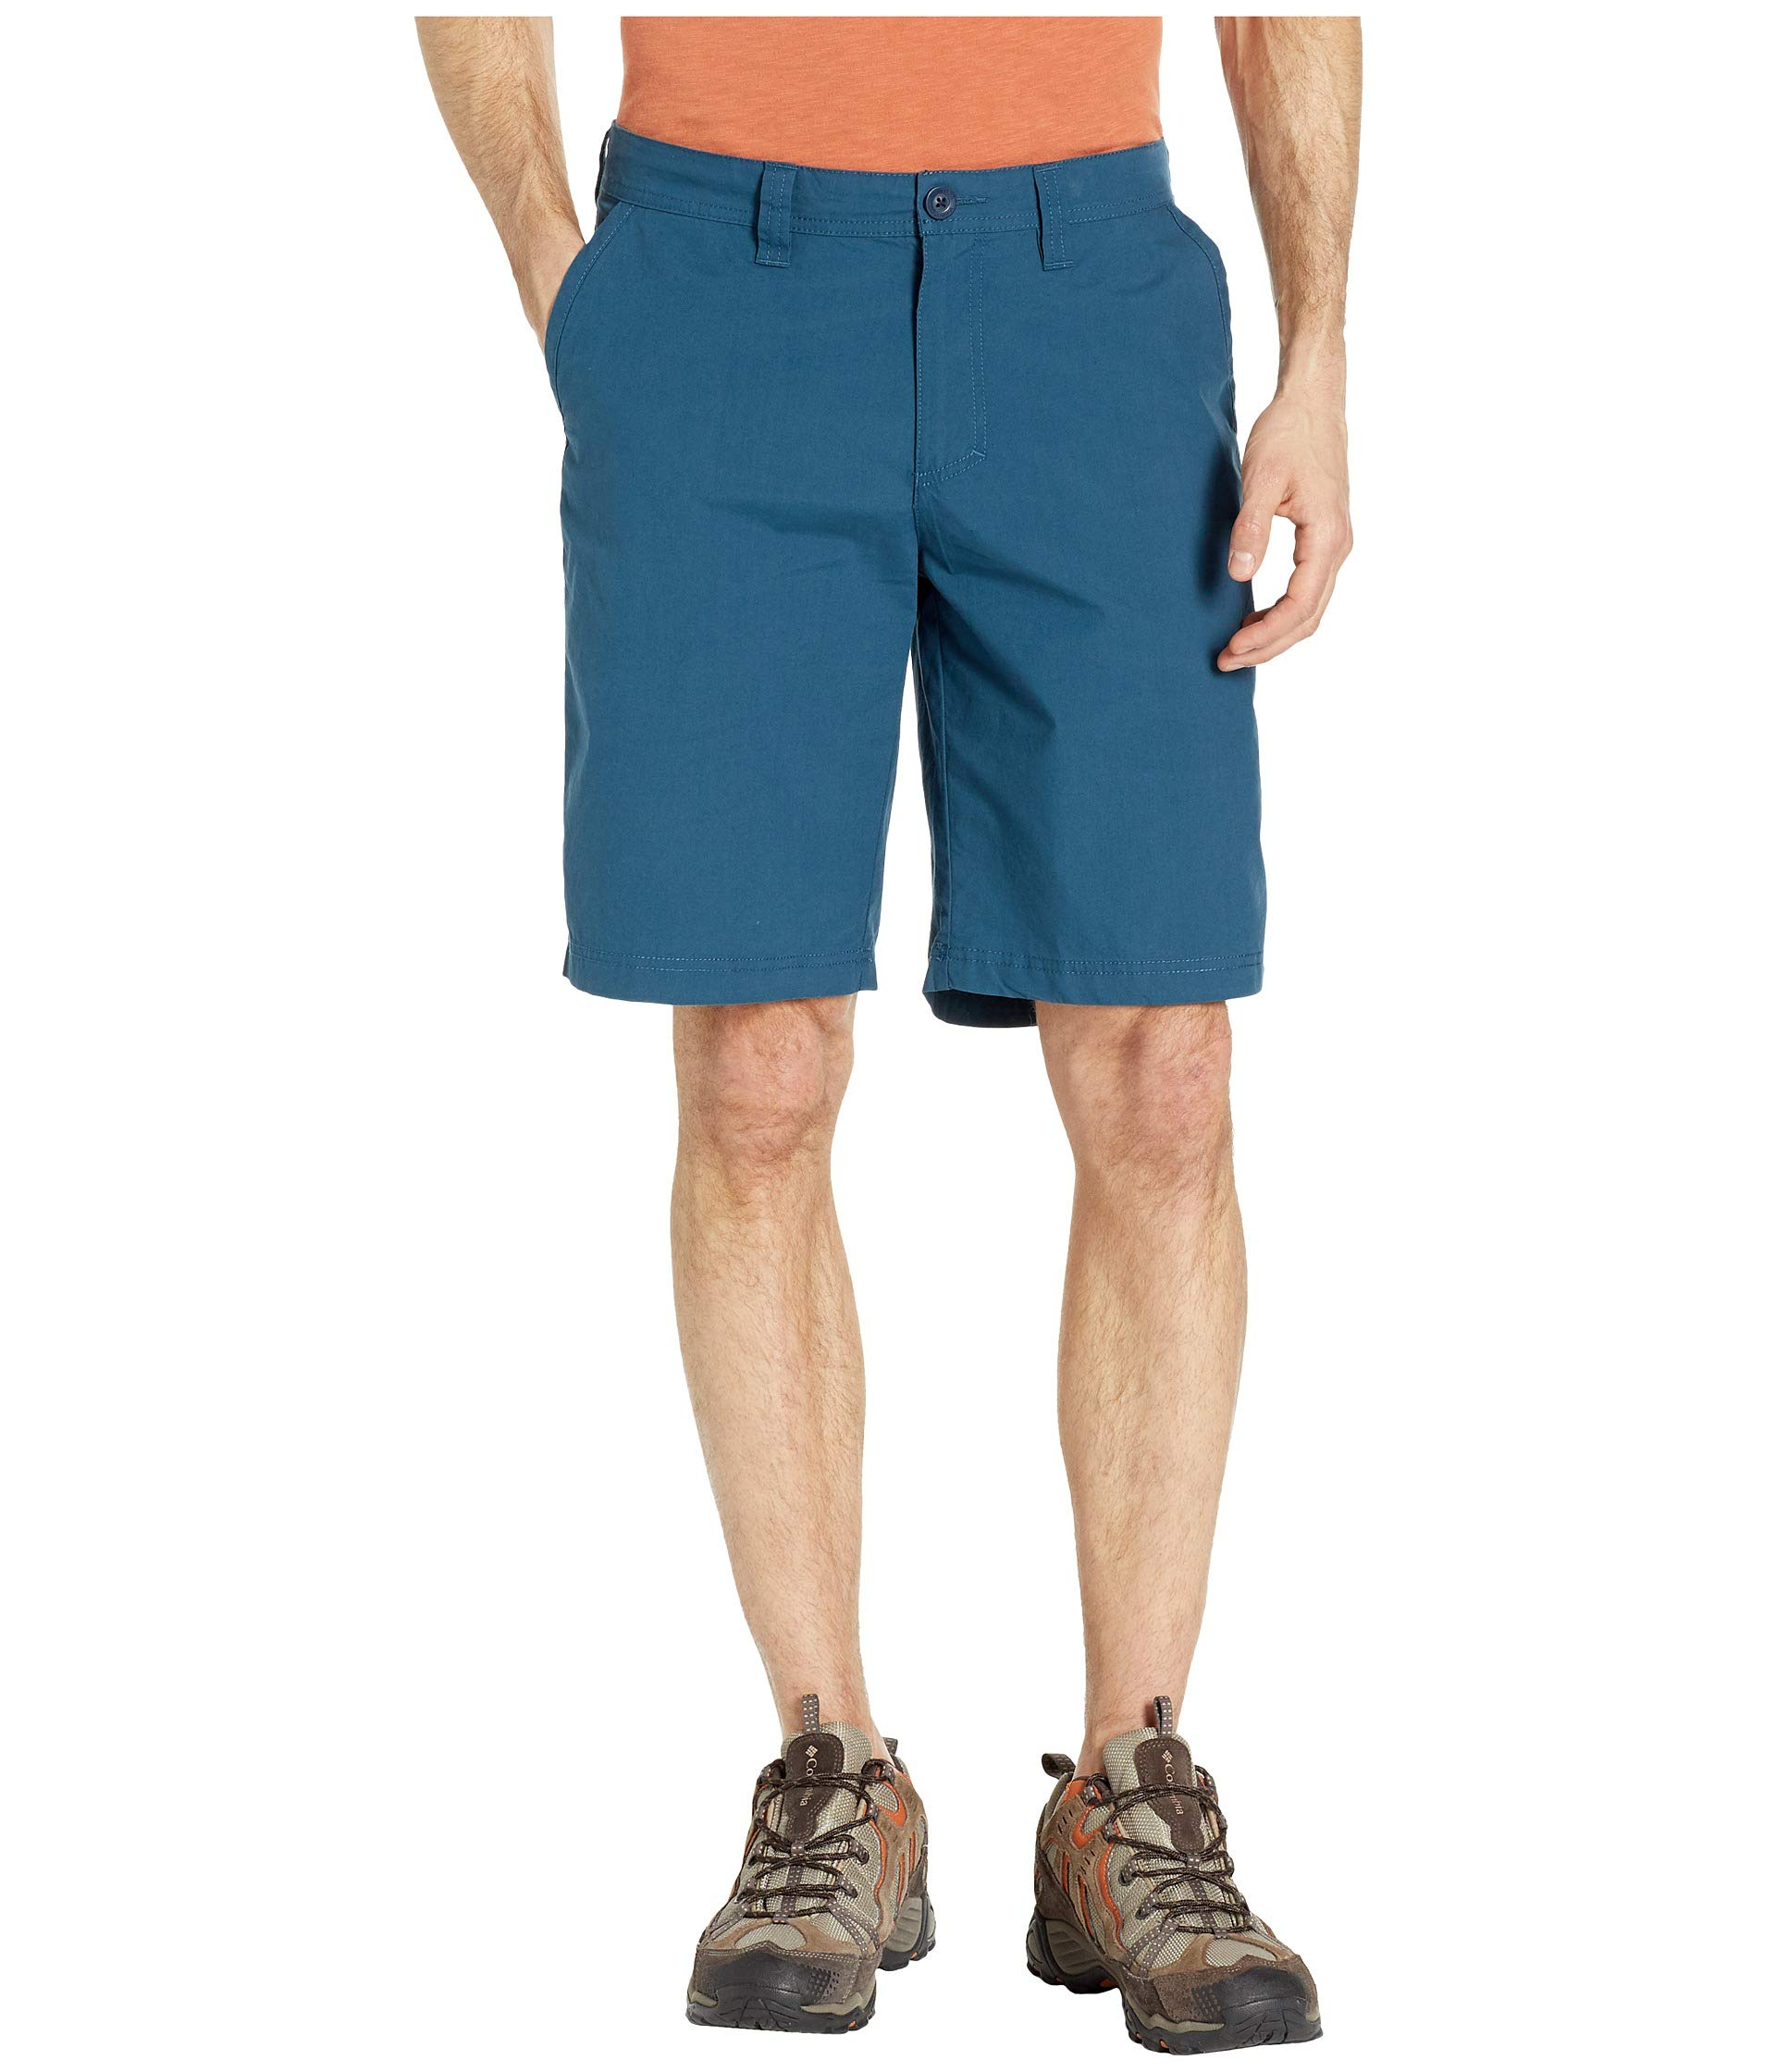 Columbia Men's Washed Out Chino Short, Petrol Blue, 38x10 by Columbia